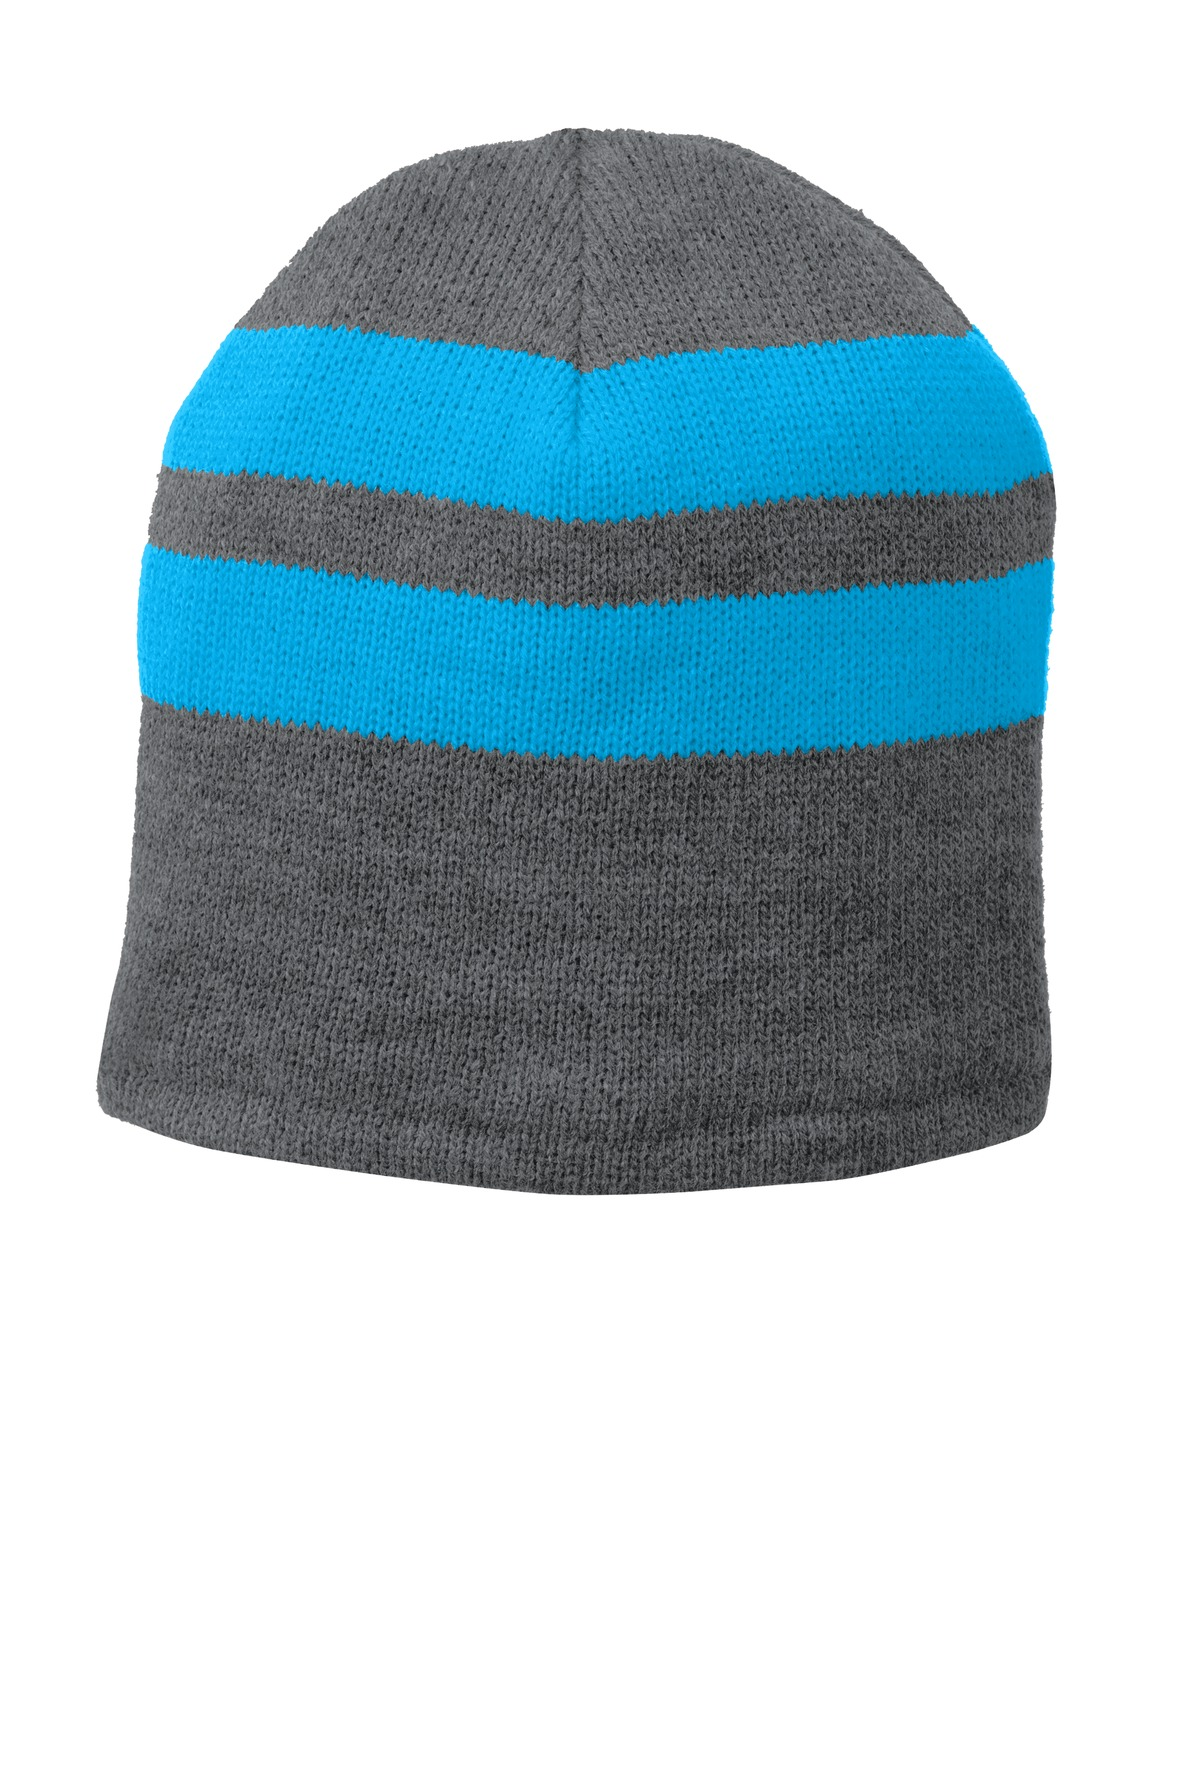 Port & Company ®  Fleece-Lined Striped Beanie Cap. C922 - Athletic Oxford/ Neon Blue